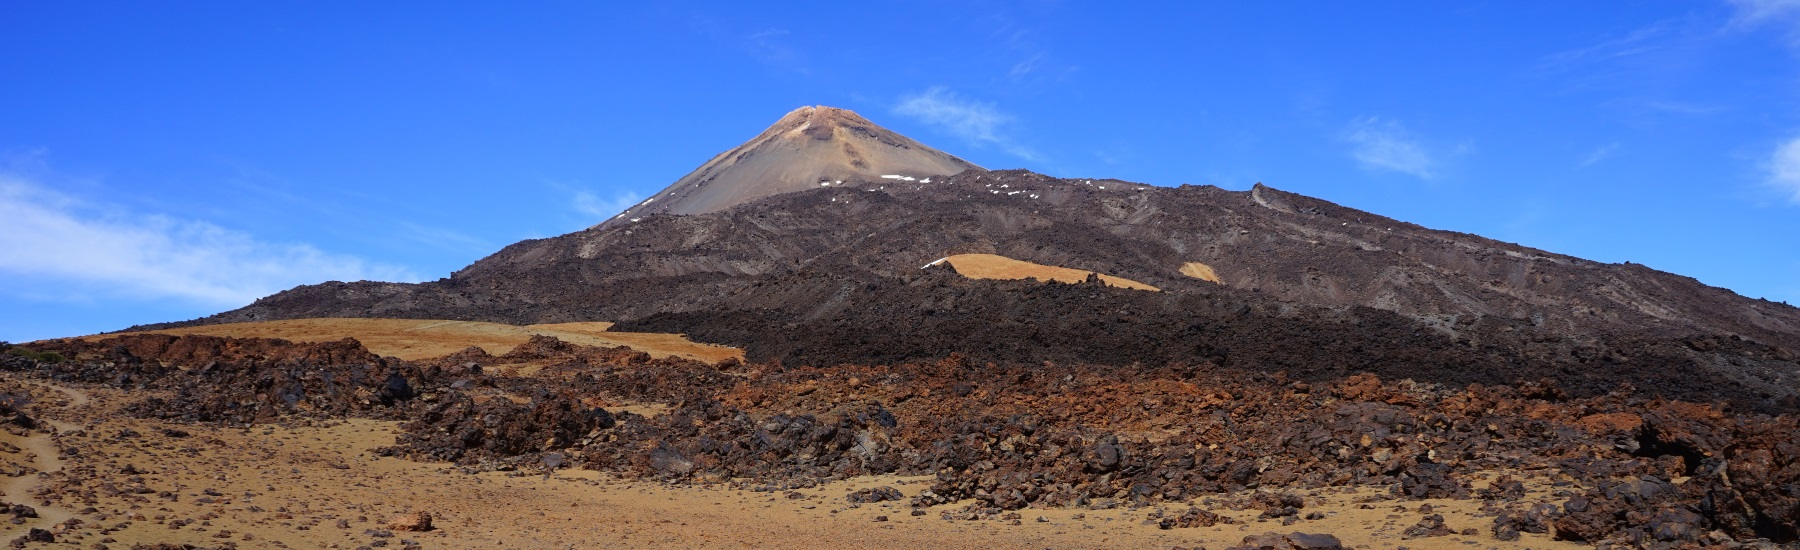 The best holiday excursions in Tenerife - Pico del Teide